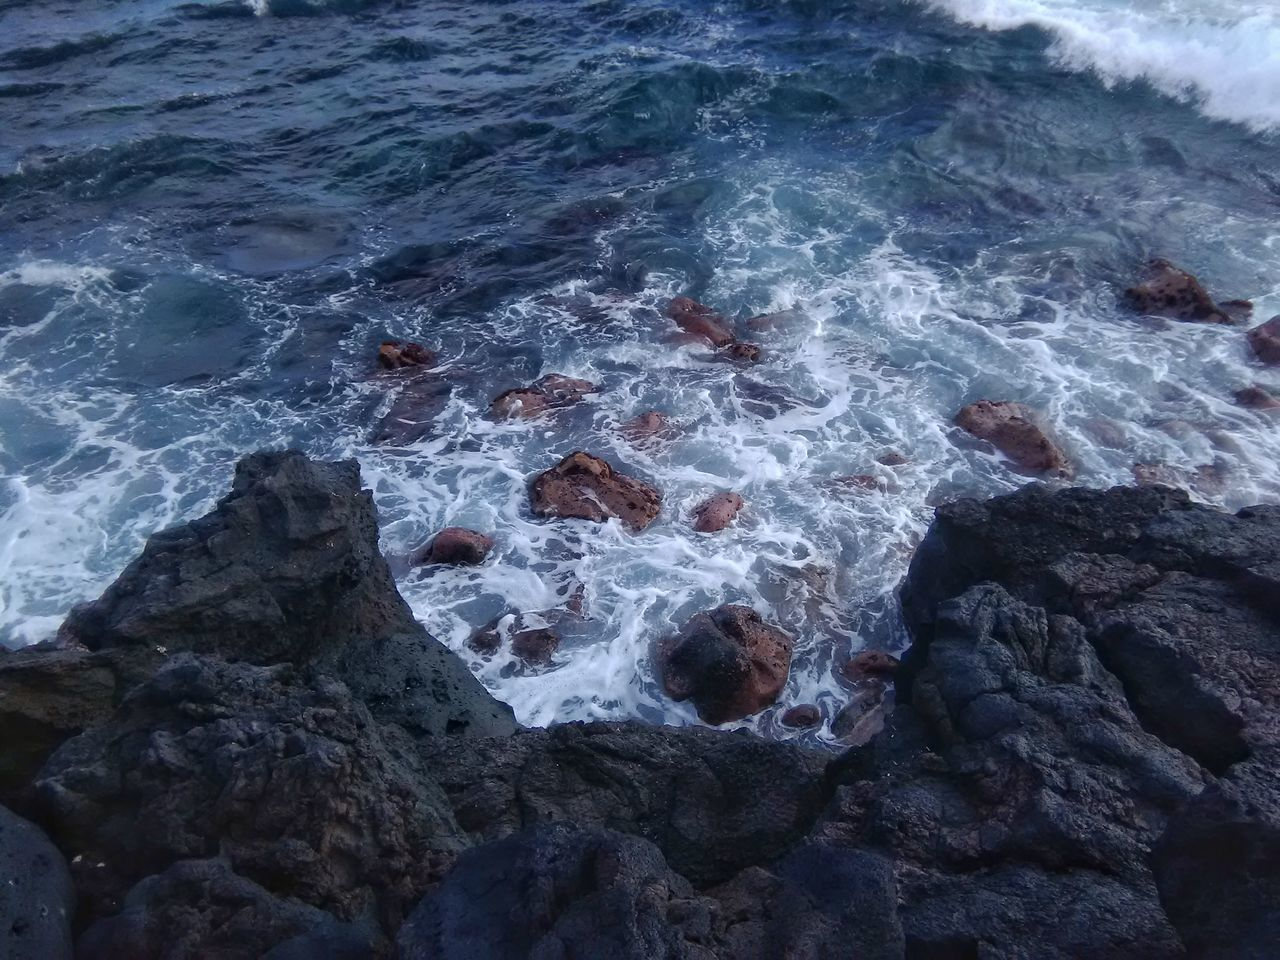 🐚 Water Nature Sea Outdoors Day Wave Beauty In Nature No People Beach High Angle View Close-up Tranquility Taking Photos Beautiful Nature No People Day Beauty